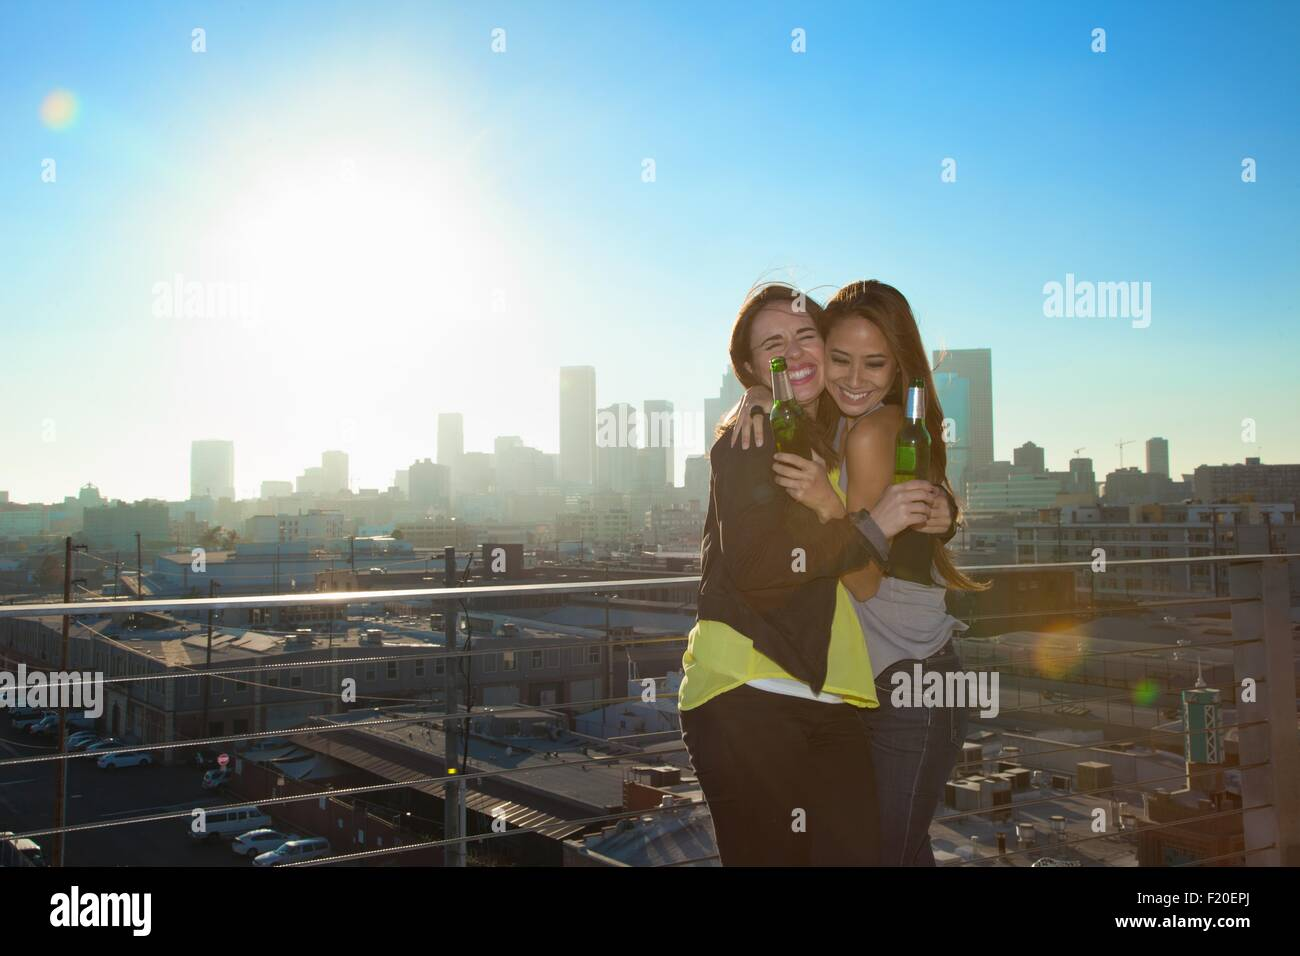 Portrait of two young women hugging and drinking beers at rooftop bar with Los Angeles skyline, USA - Stock Image